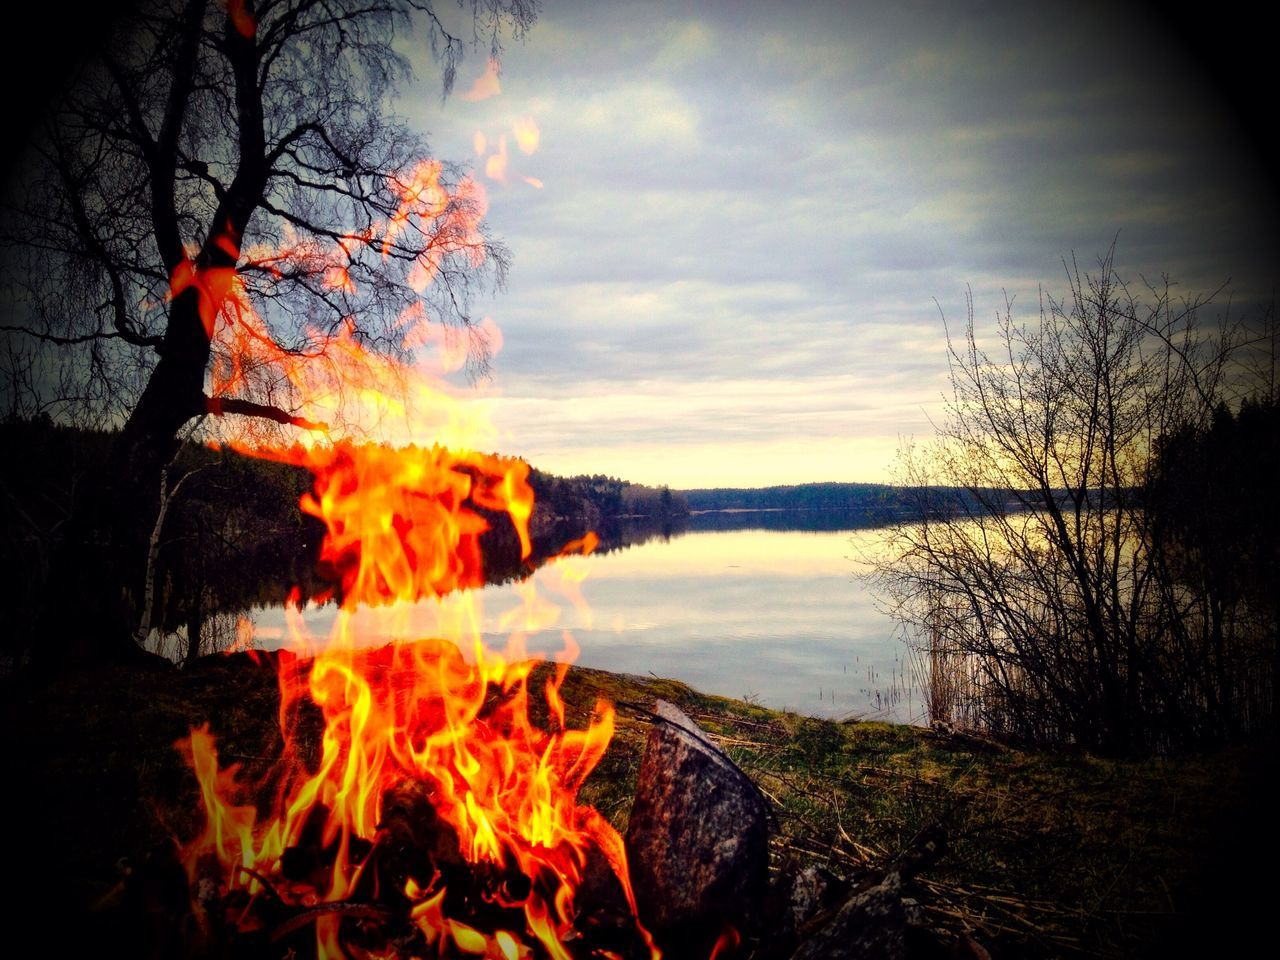 Burning Campfire And Lake